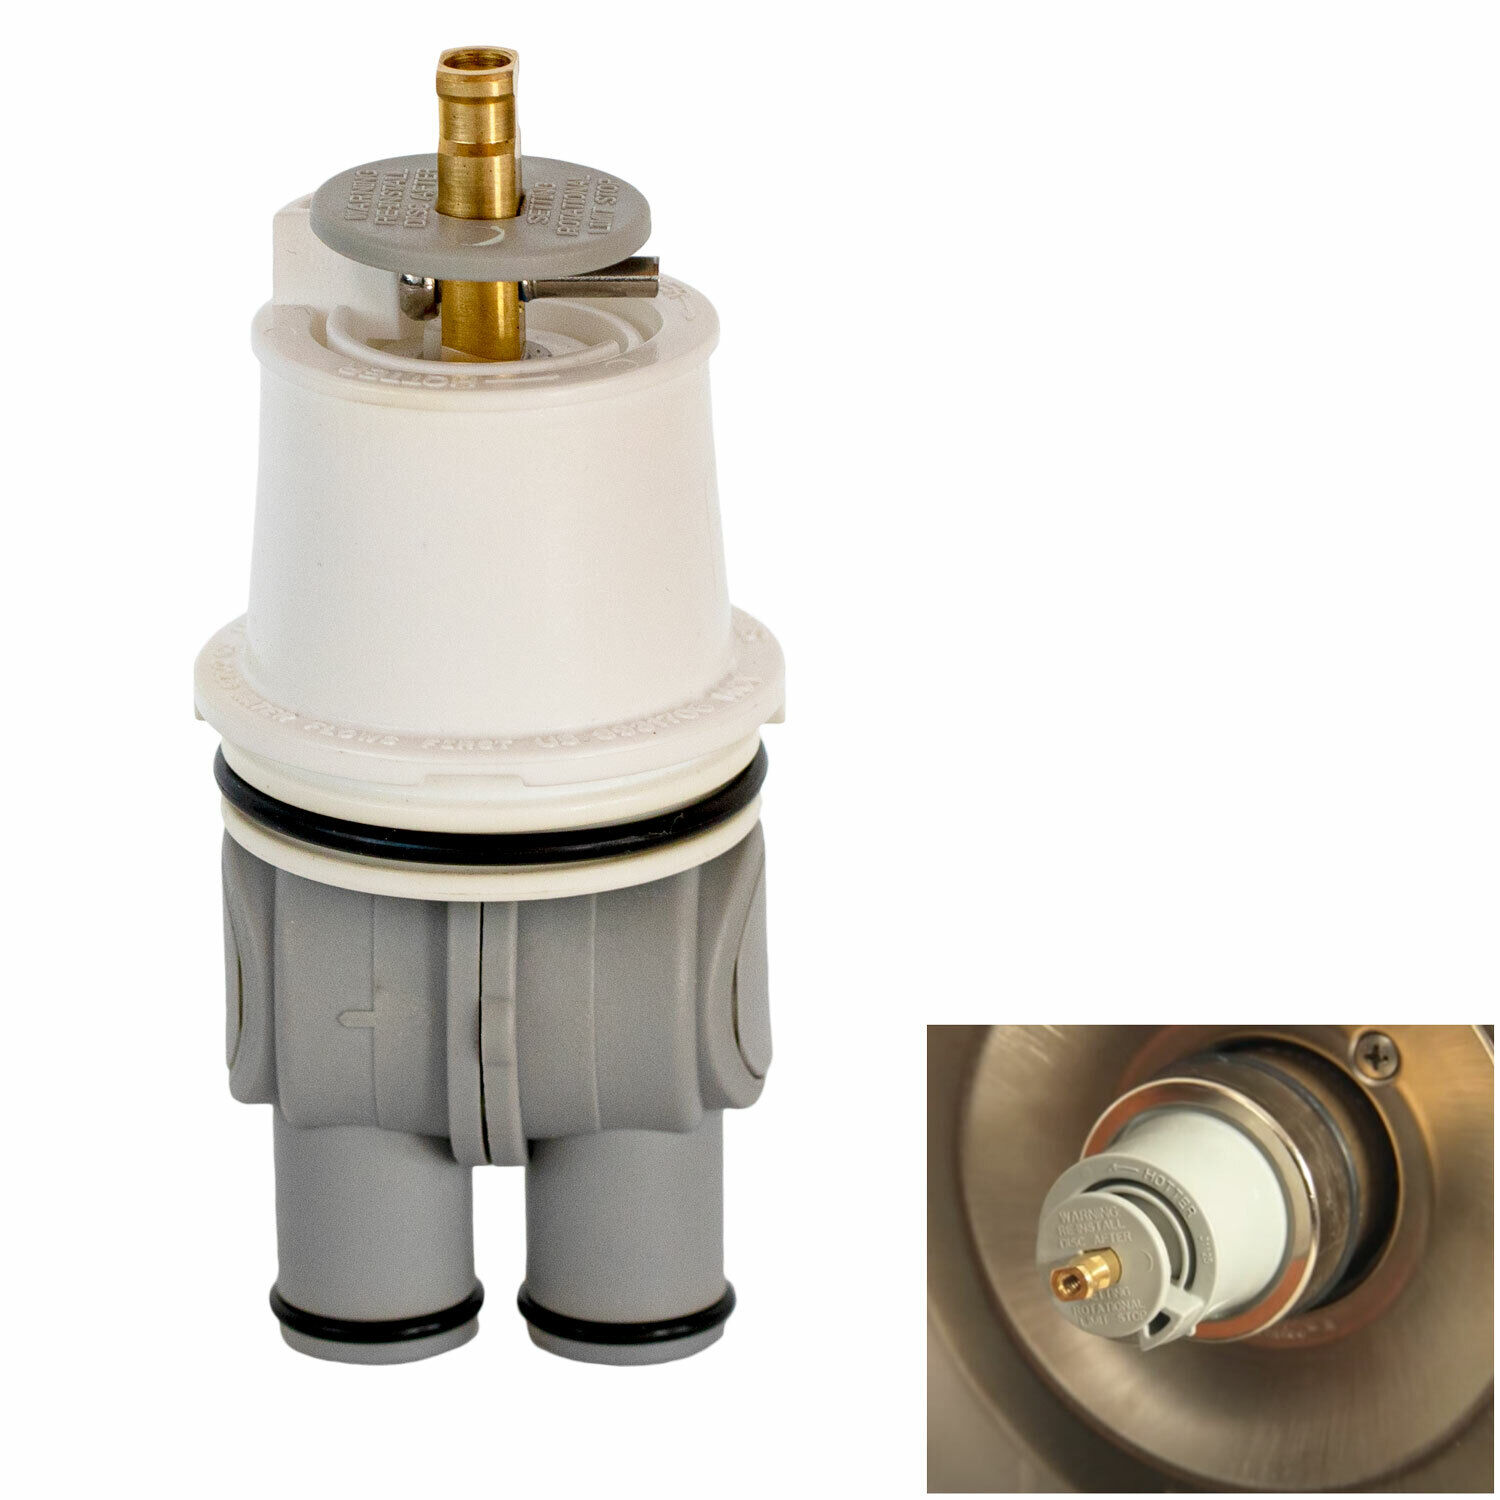 FlowRite Replacement RP46074 Cartridge Assembly for Delta MultiChoice 13/14 Home & Garden